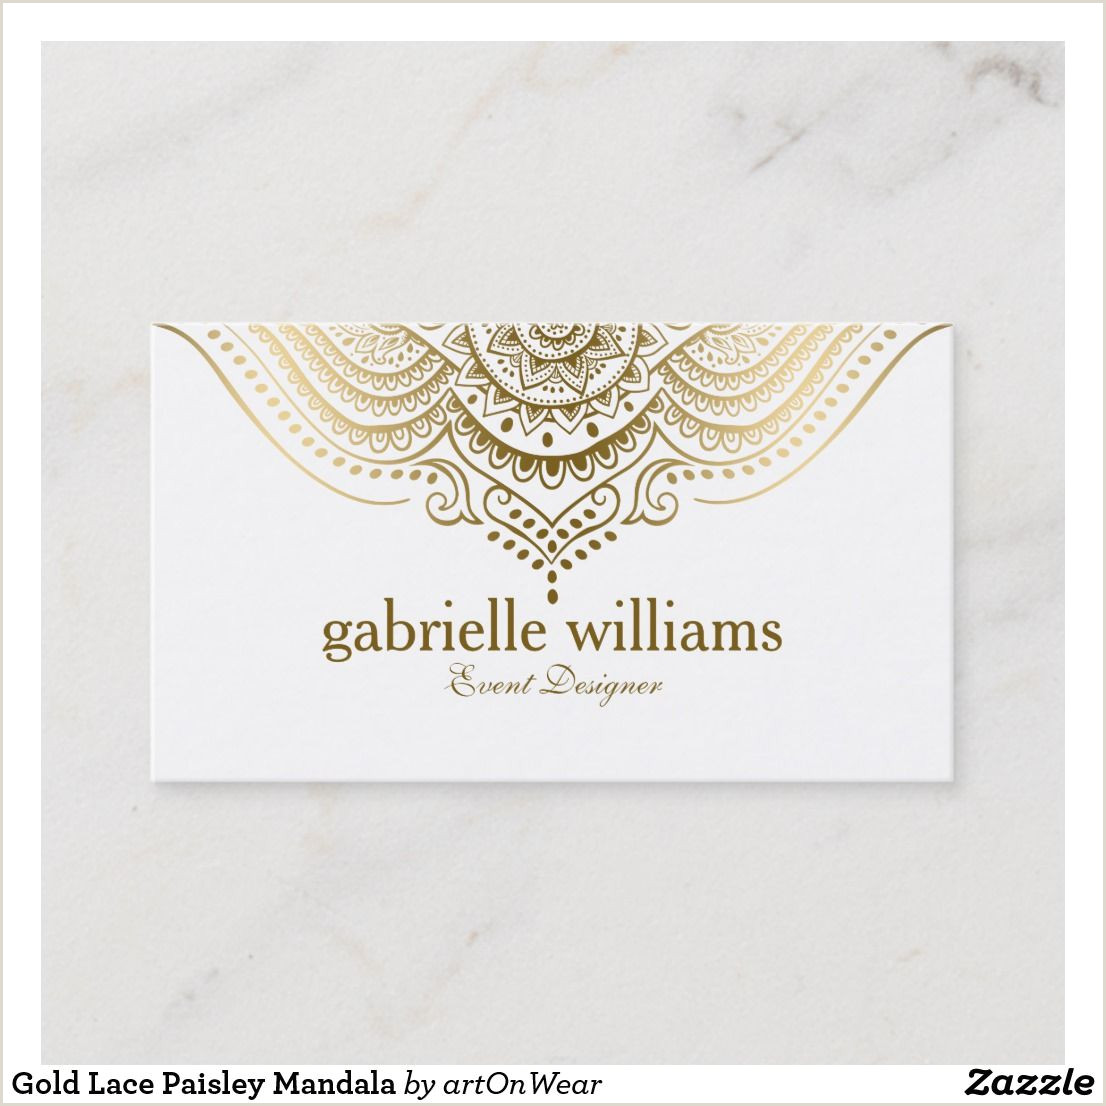 Create Your Own Business Cards Gold Lace Paisley Mandala Business Card